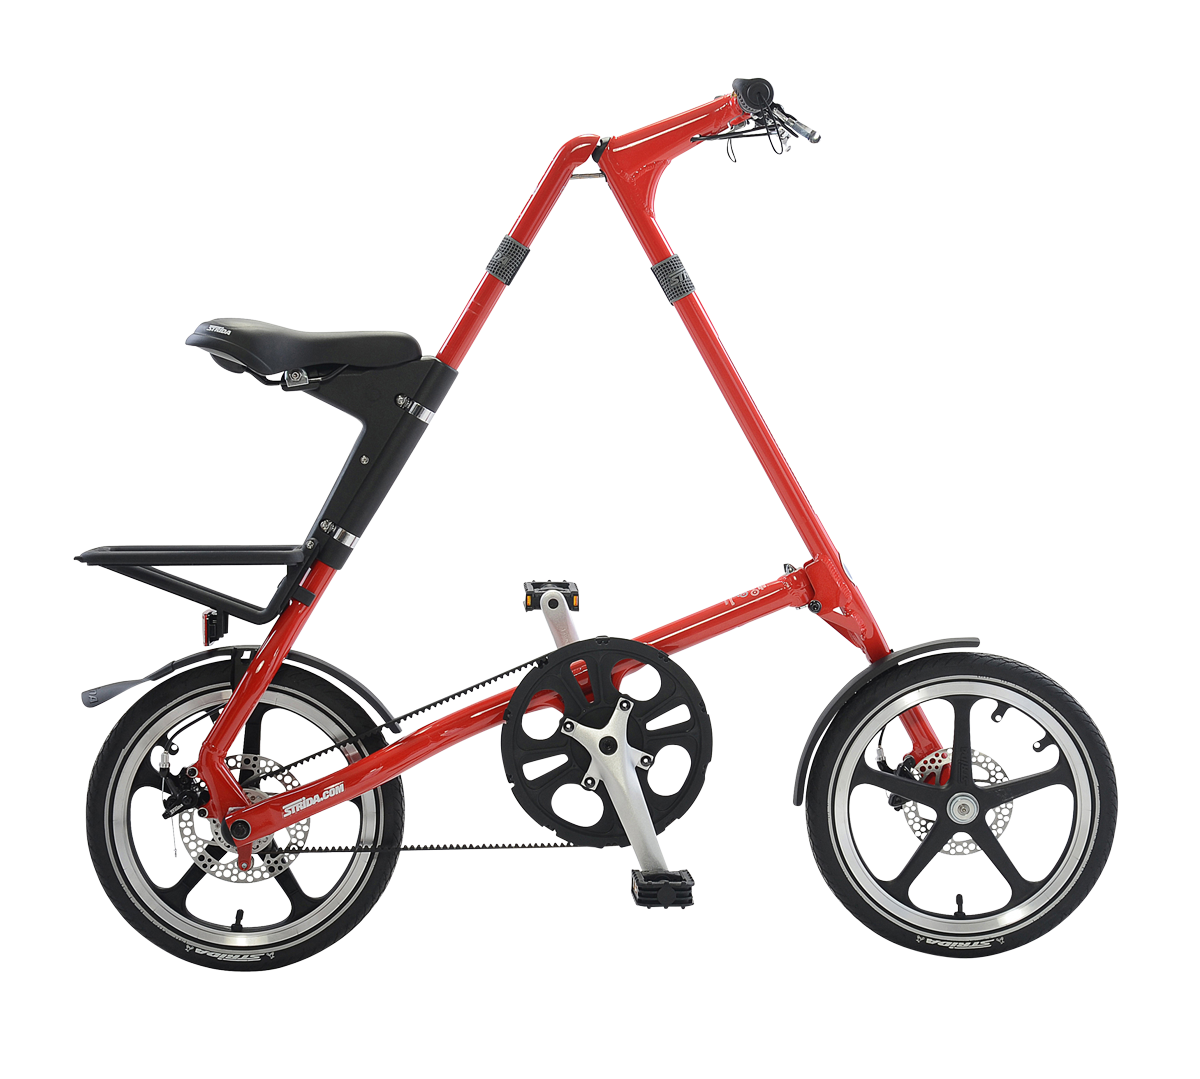 STRiDA LT Folding Bicycle, Red-0